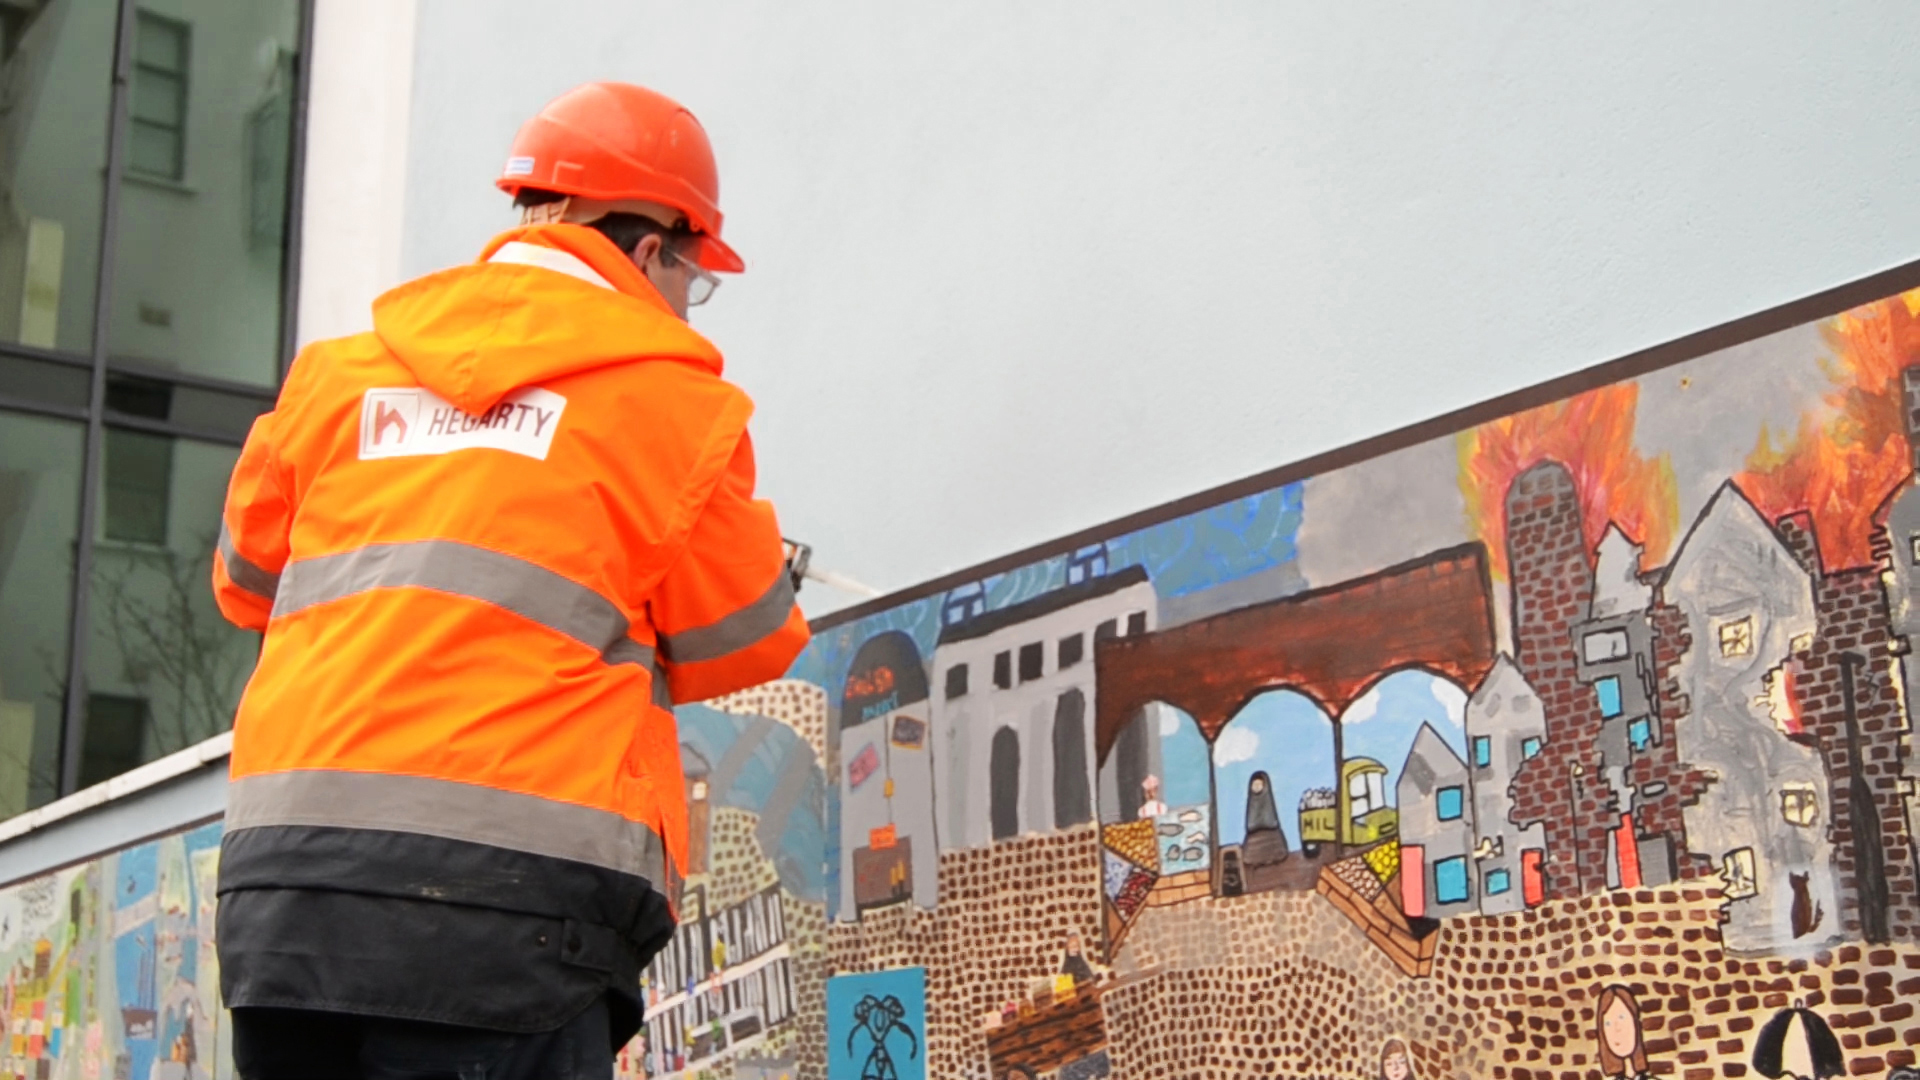 Educate Together Mural (5)